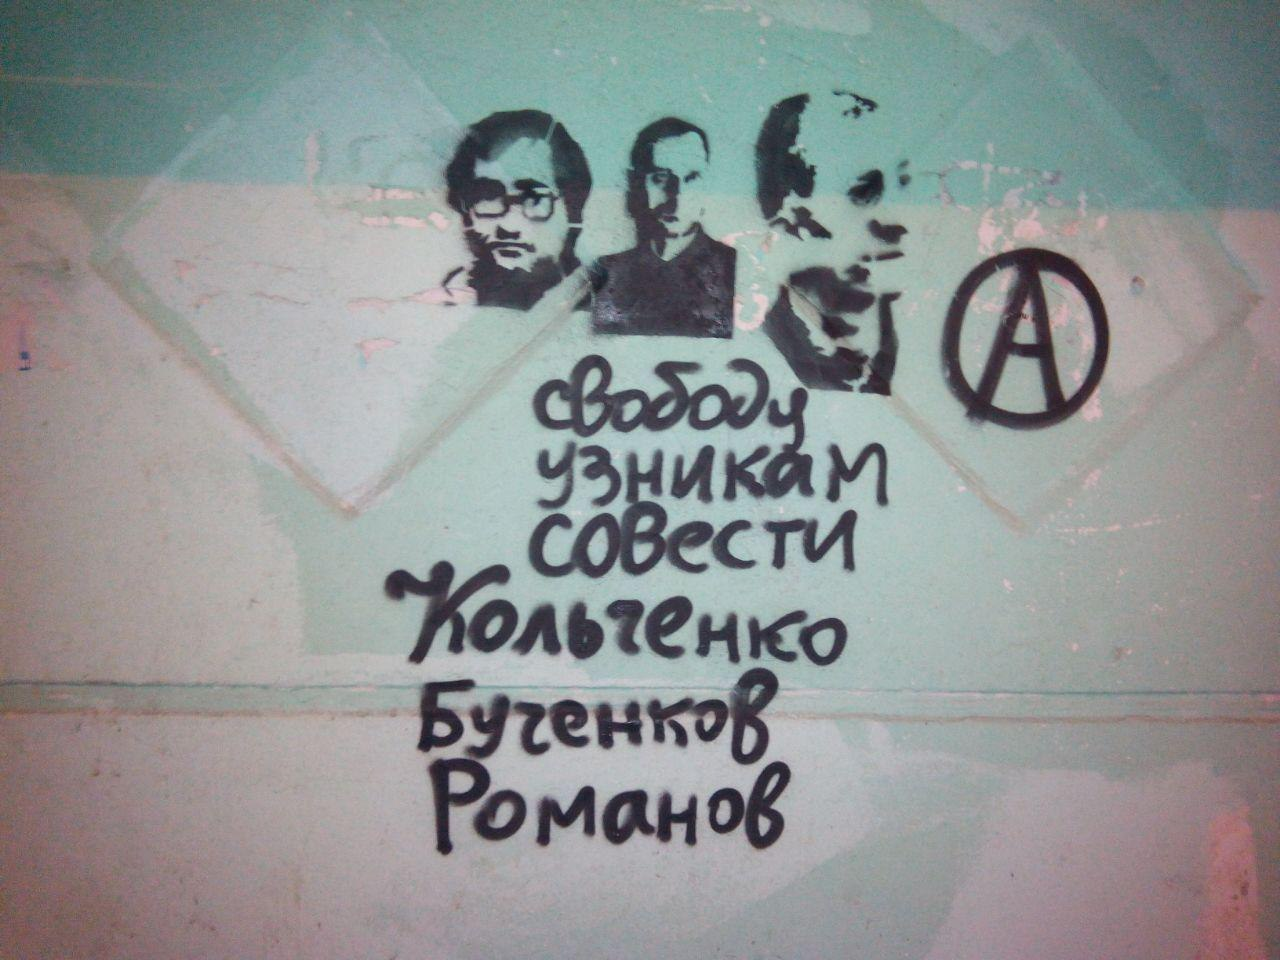 Graffiti in support of Anarchists Prisoners in Tomsk, Russia